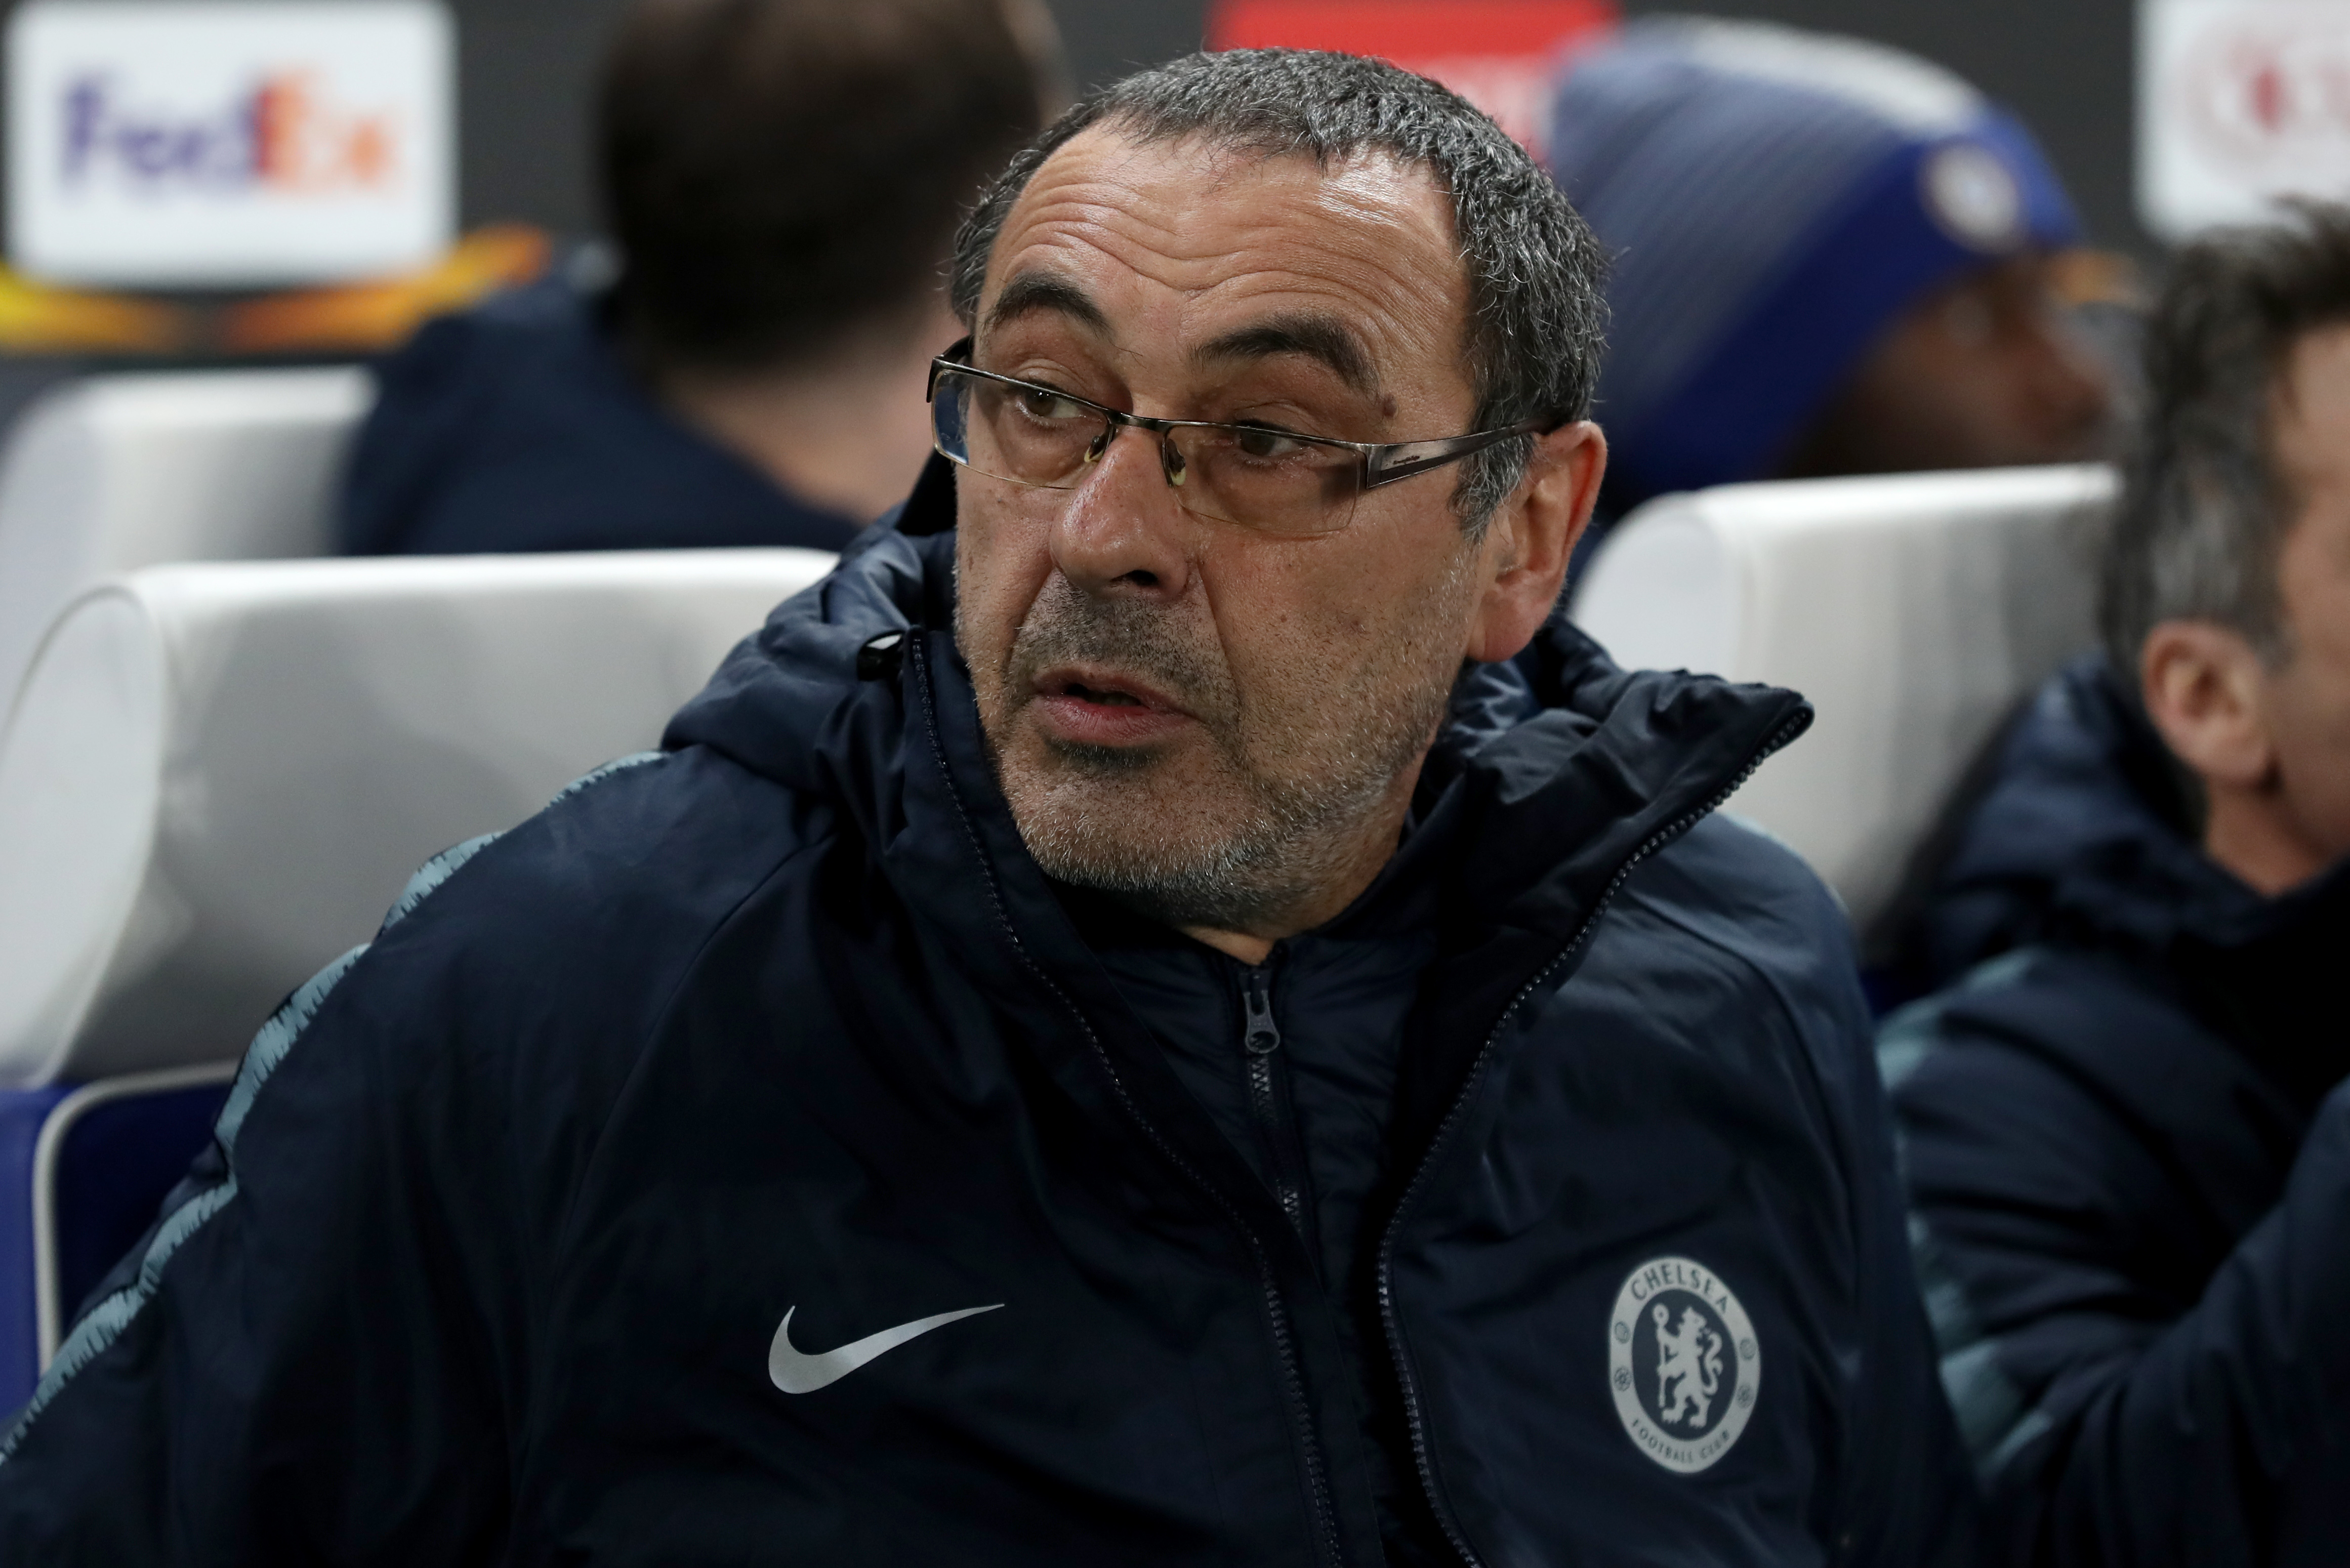 It's not good news for Sarri. Image: PA Images